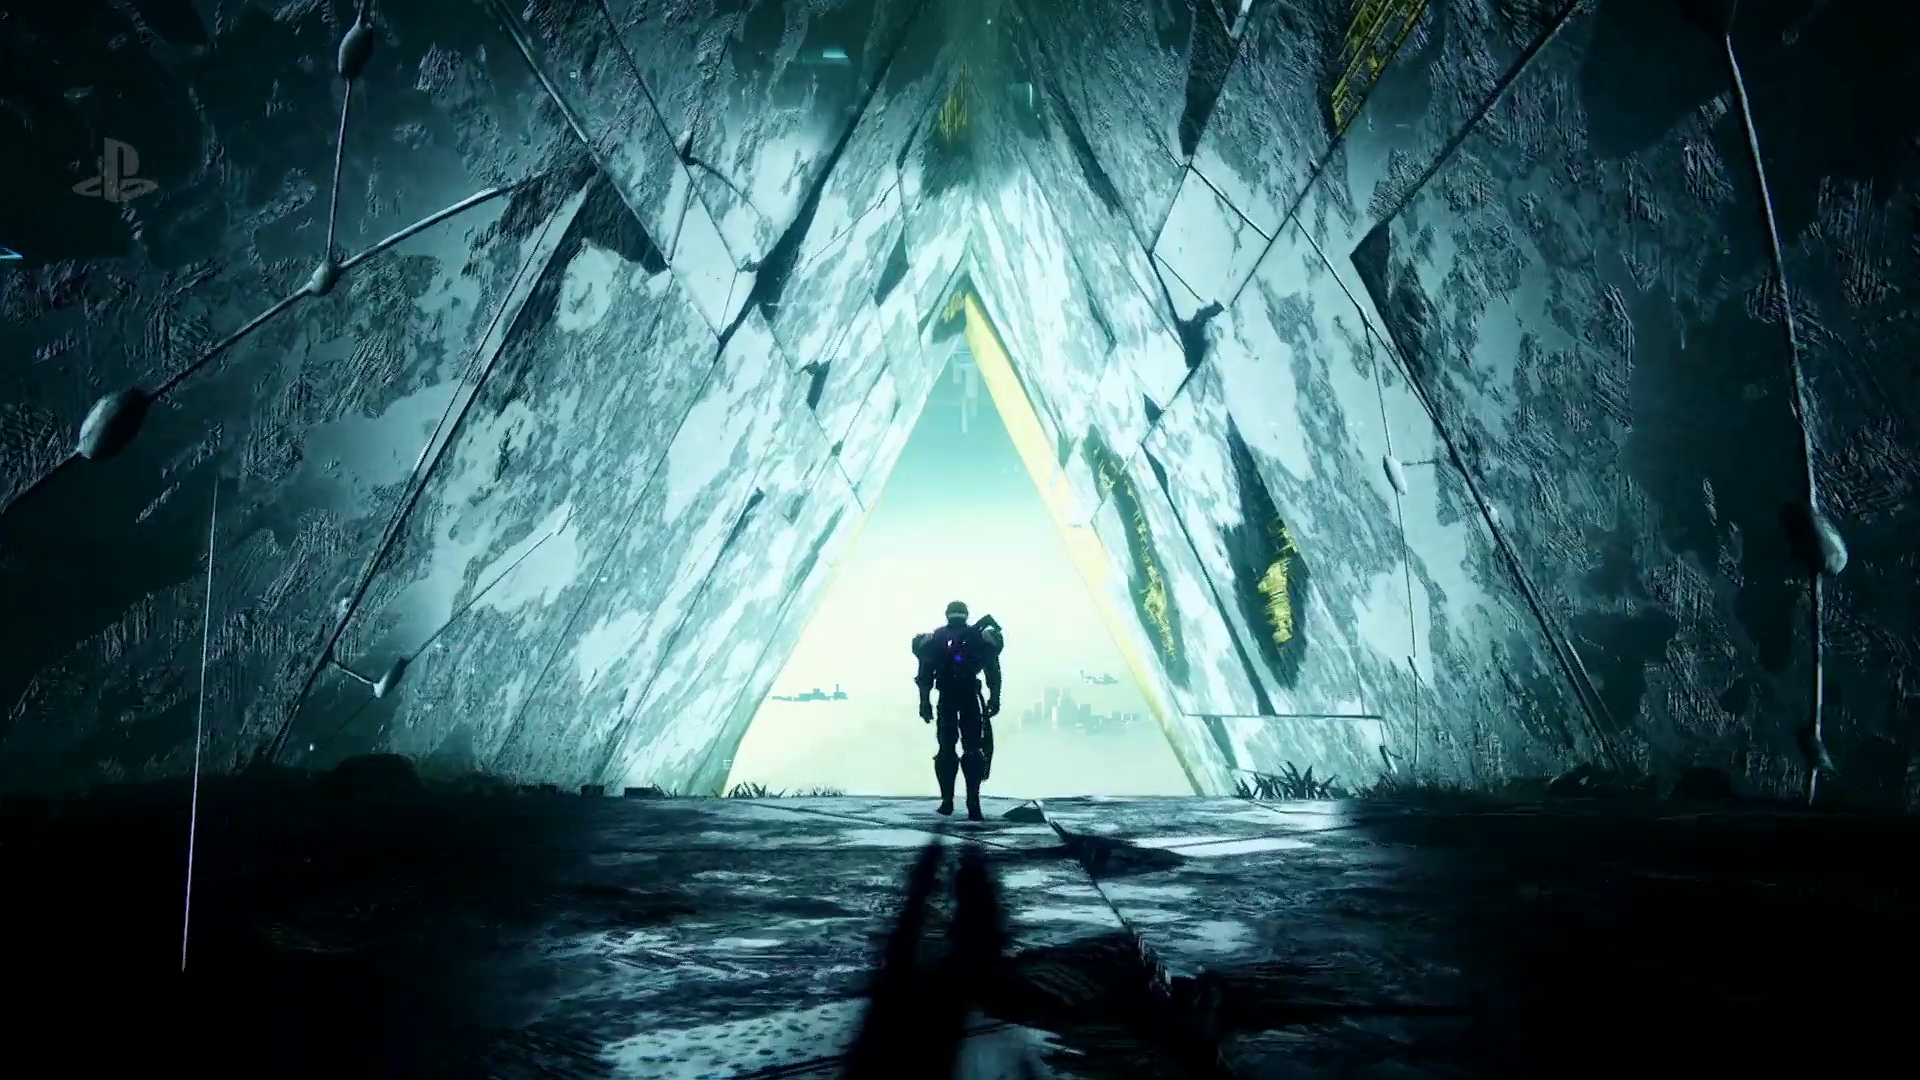 Destiny 2: Curse of Osiris - Titan entering triangular passage